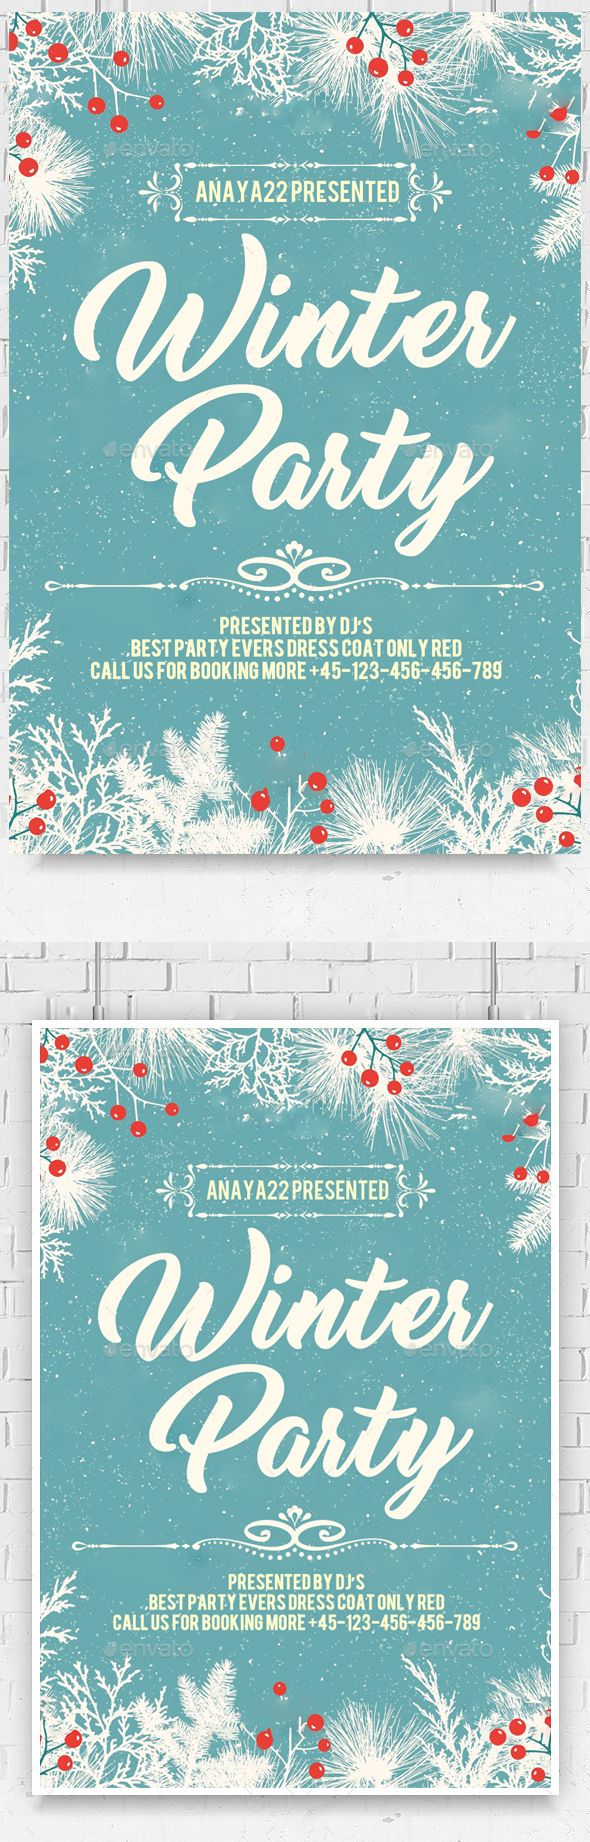 Winter Party Flyer Template PSD